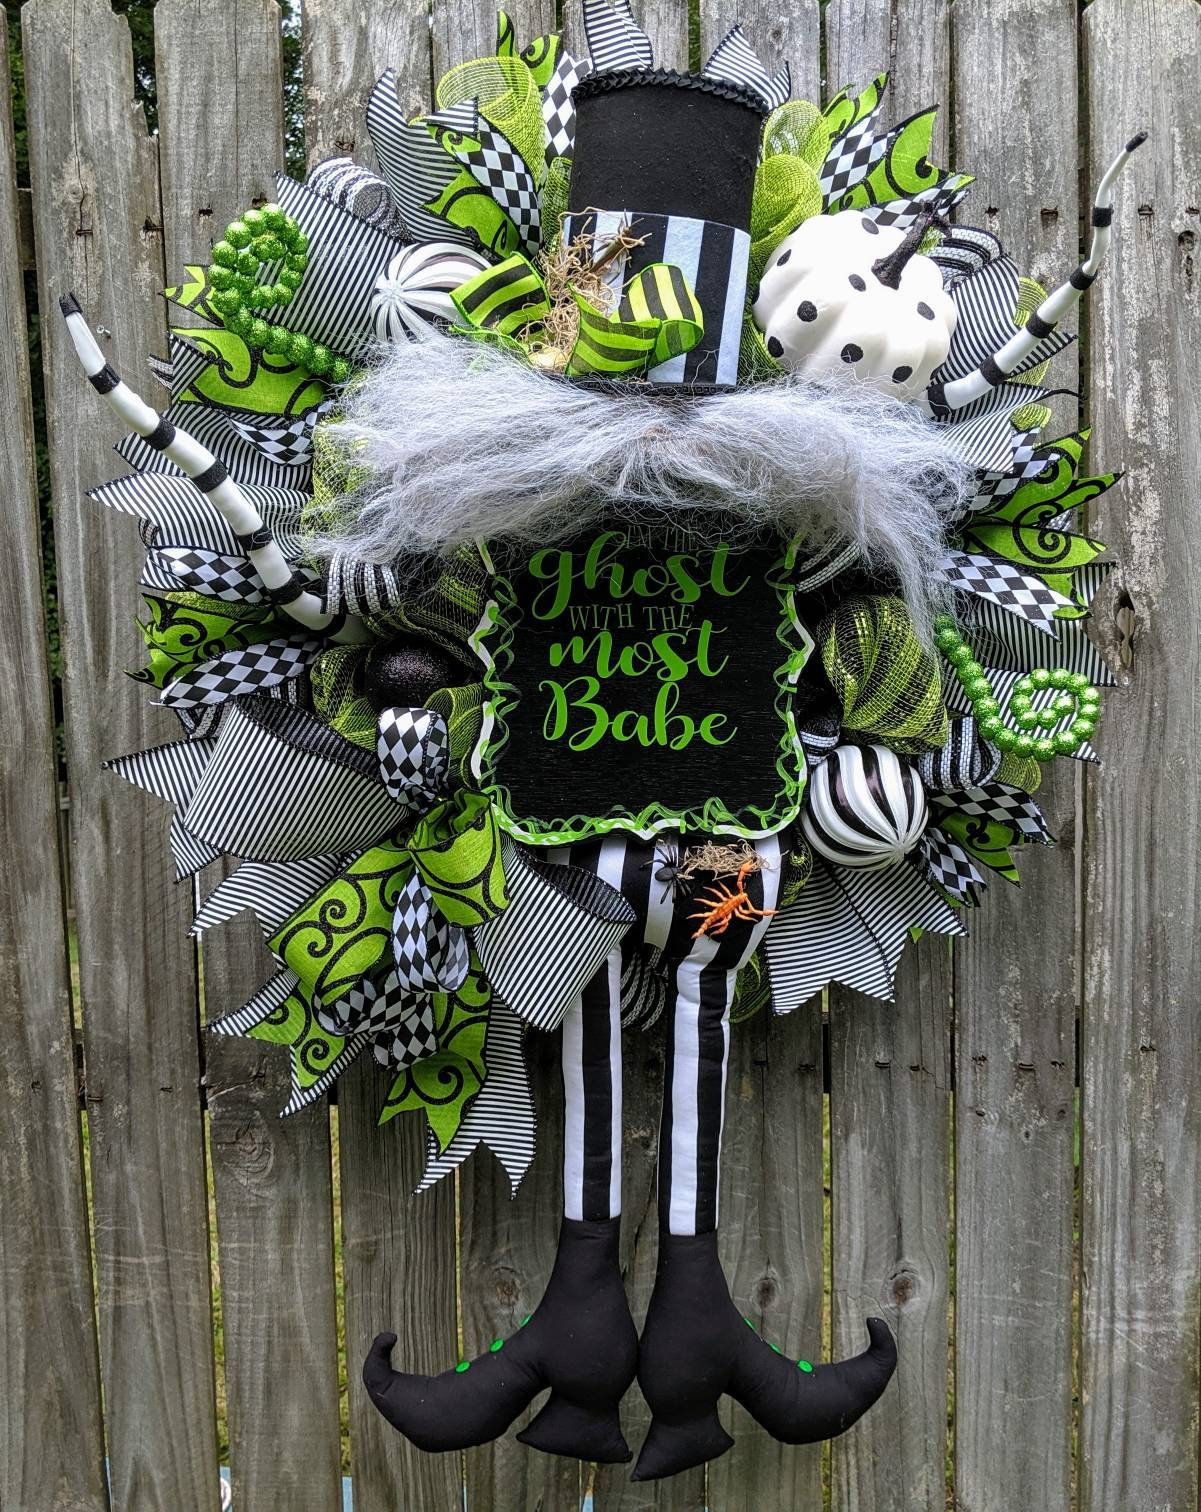 Beetlejuice Wreath, Halloween Wreath, Beetlejuice Decor